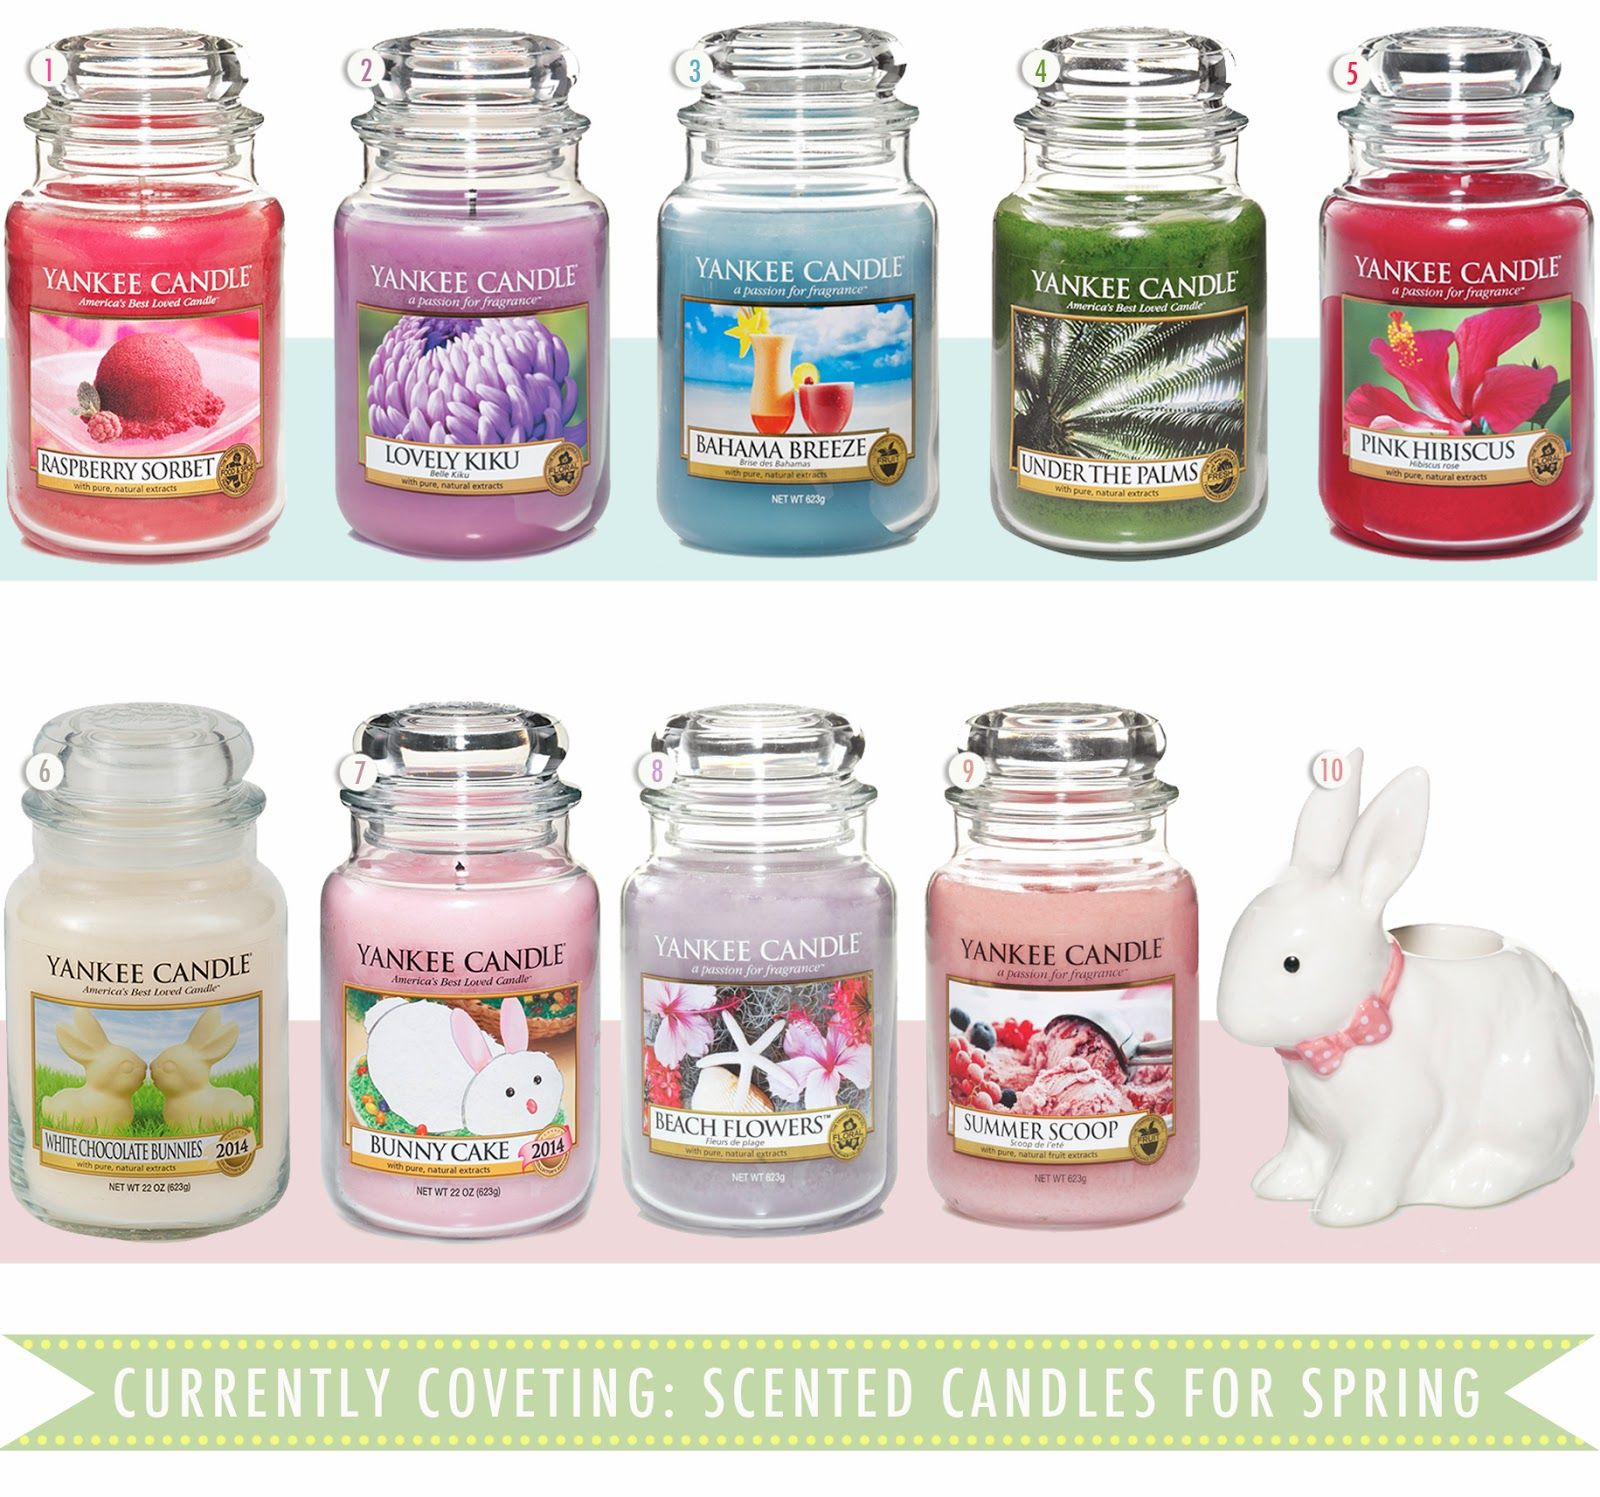 The Best Yankee Candles This Spring 2017